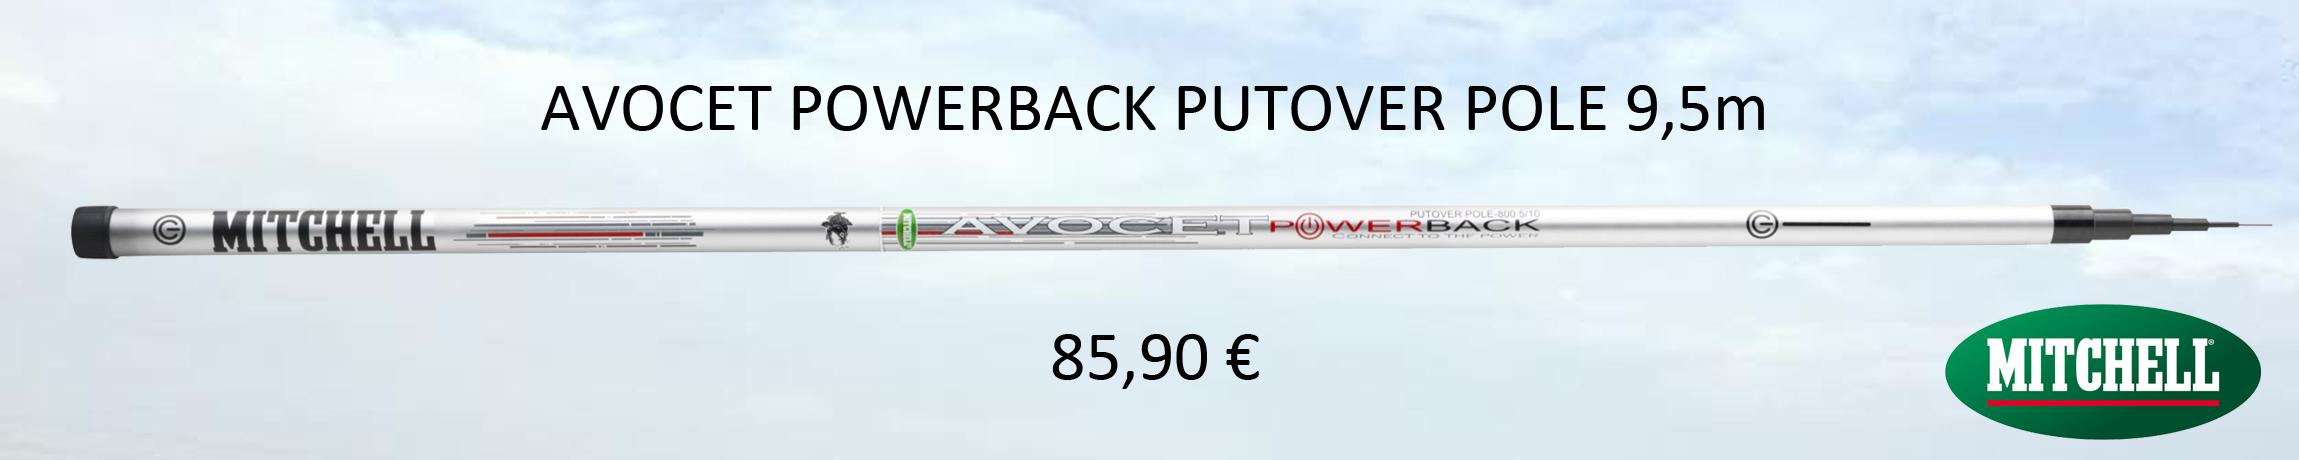 mitchell_powerback_putover_pole